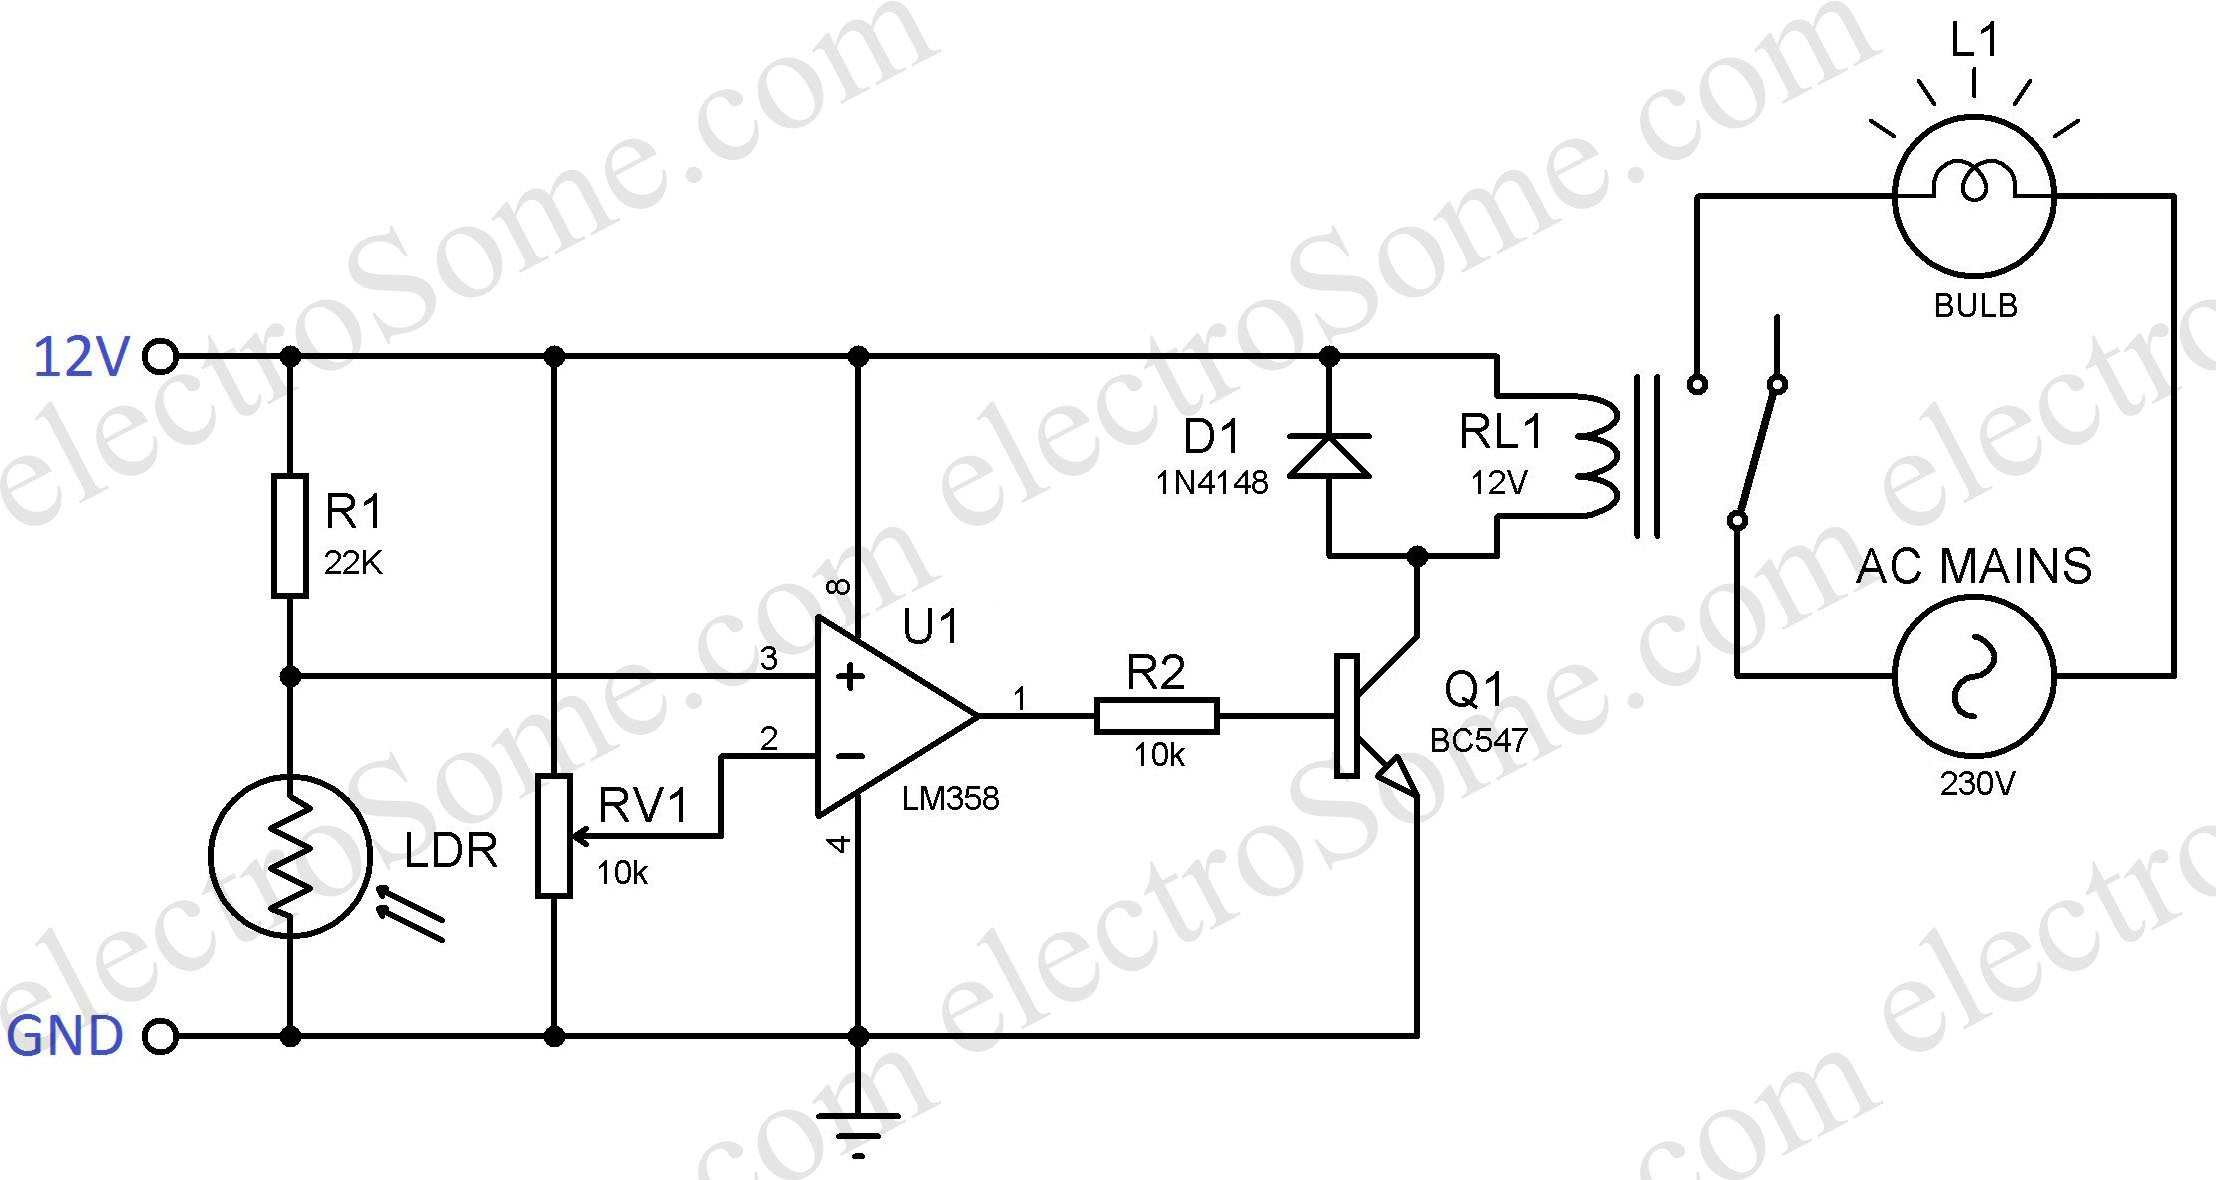 Test Light Wiring Diagram Schematic Diagrams Circuit Of Porch Diy Enthusiasts U2022 Emergency Facility